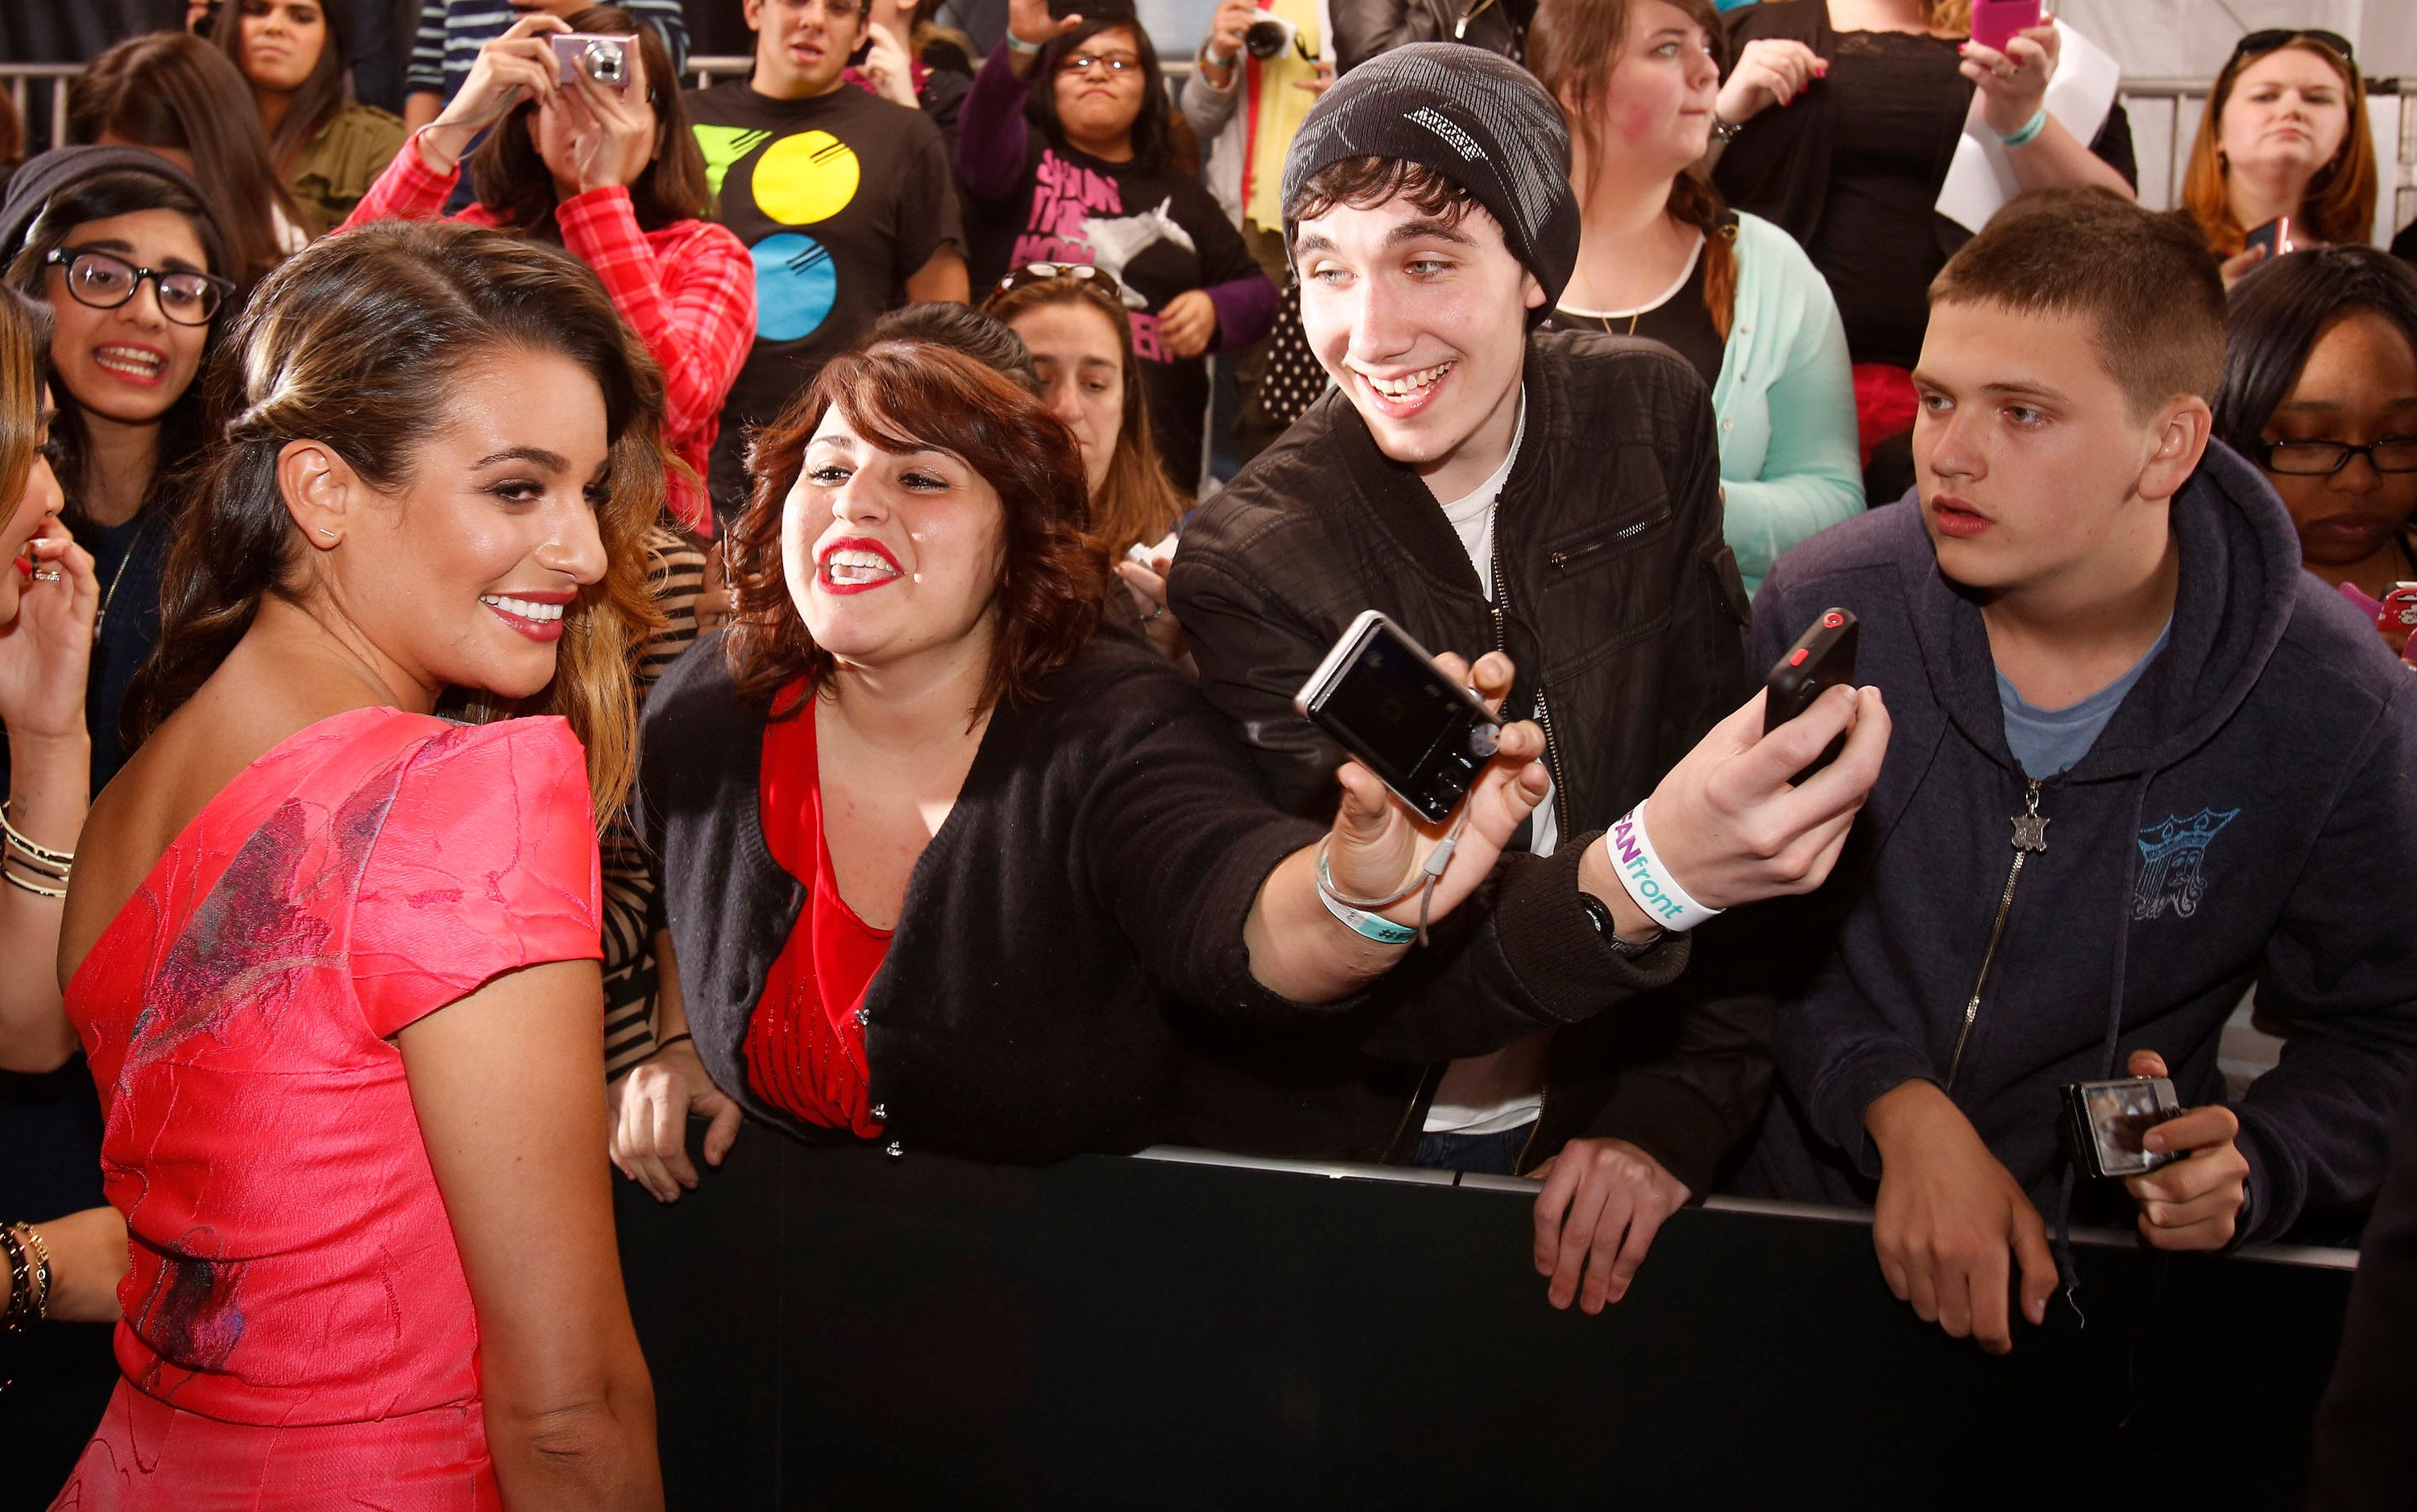 Lea Michele isn't very friendly with her fans / Getty Images